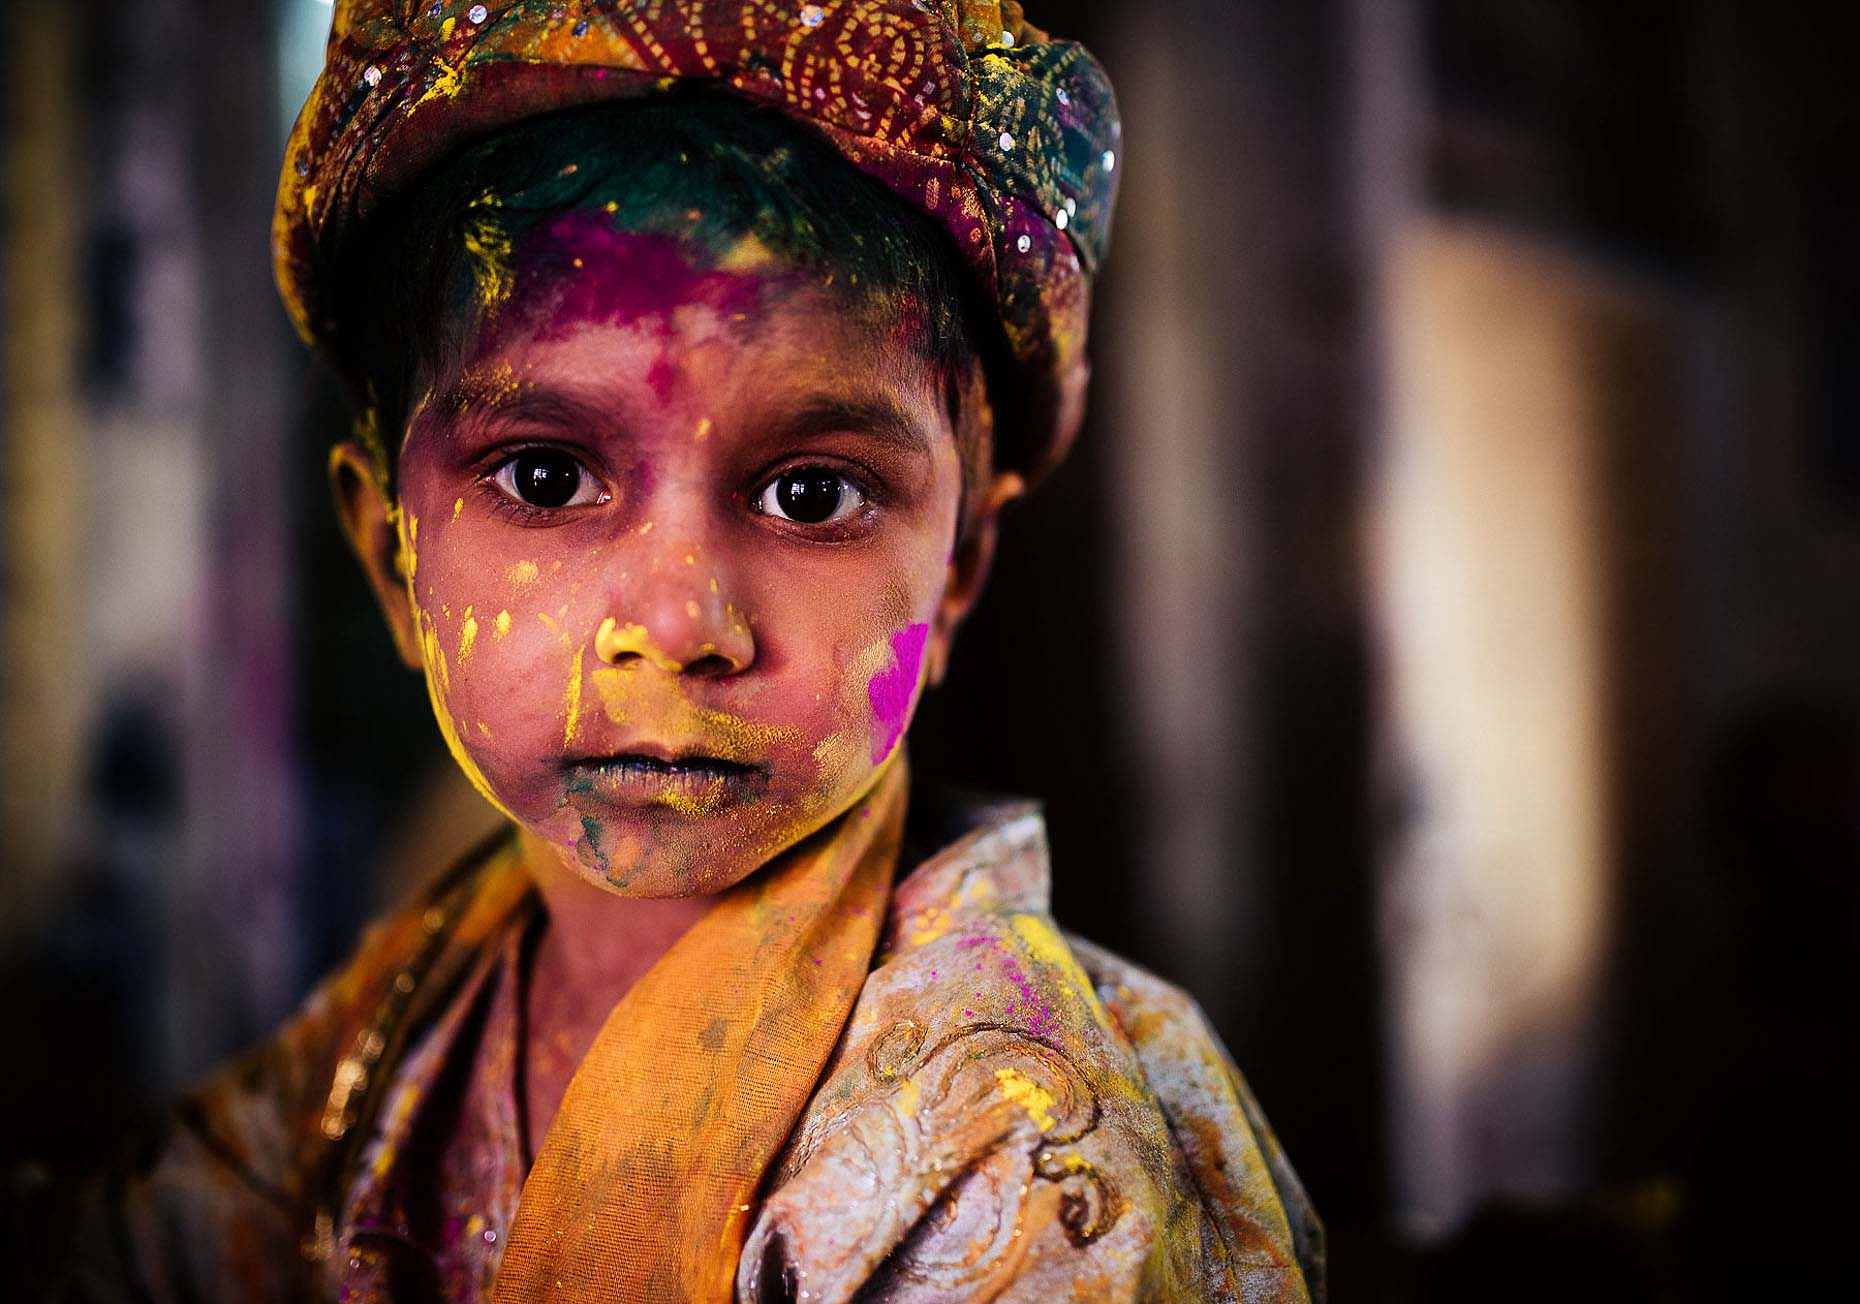 Portrait-Indian-Boy-Holi-Uttar-Pradesh-Paint